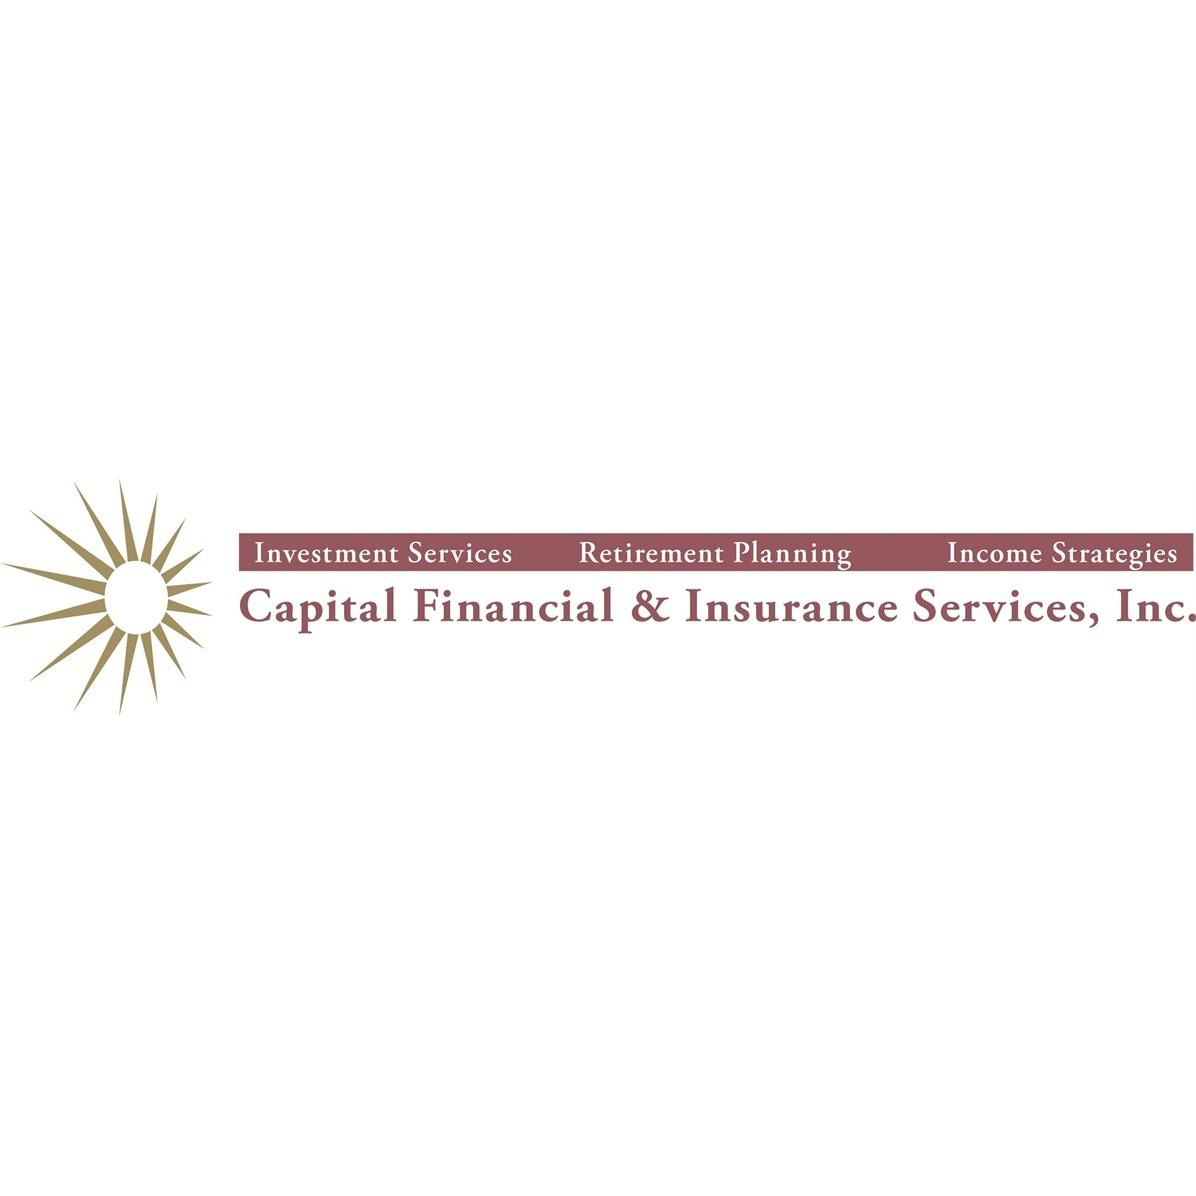 Capital Financial & Insurance Services